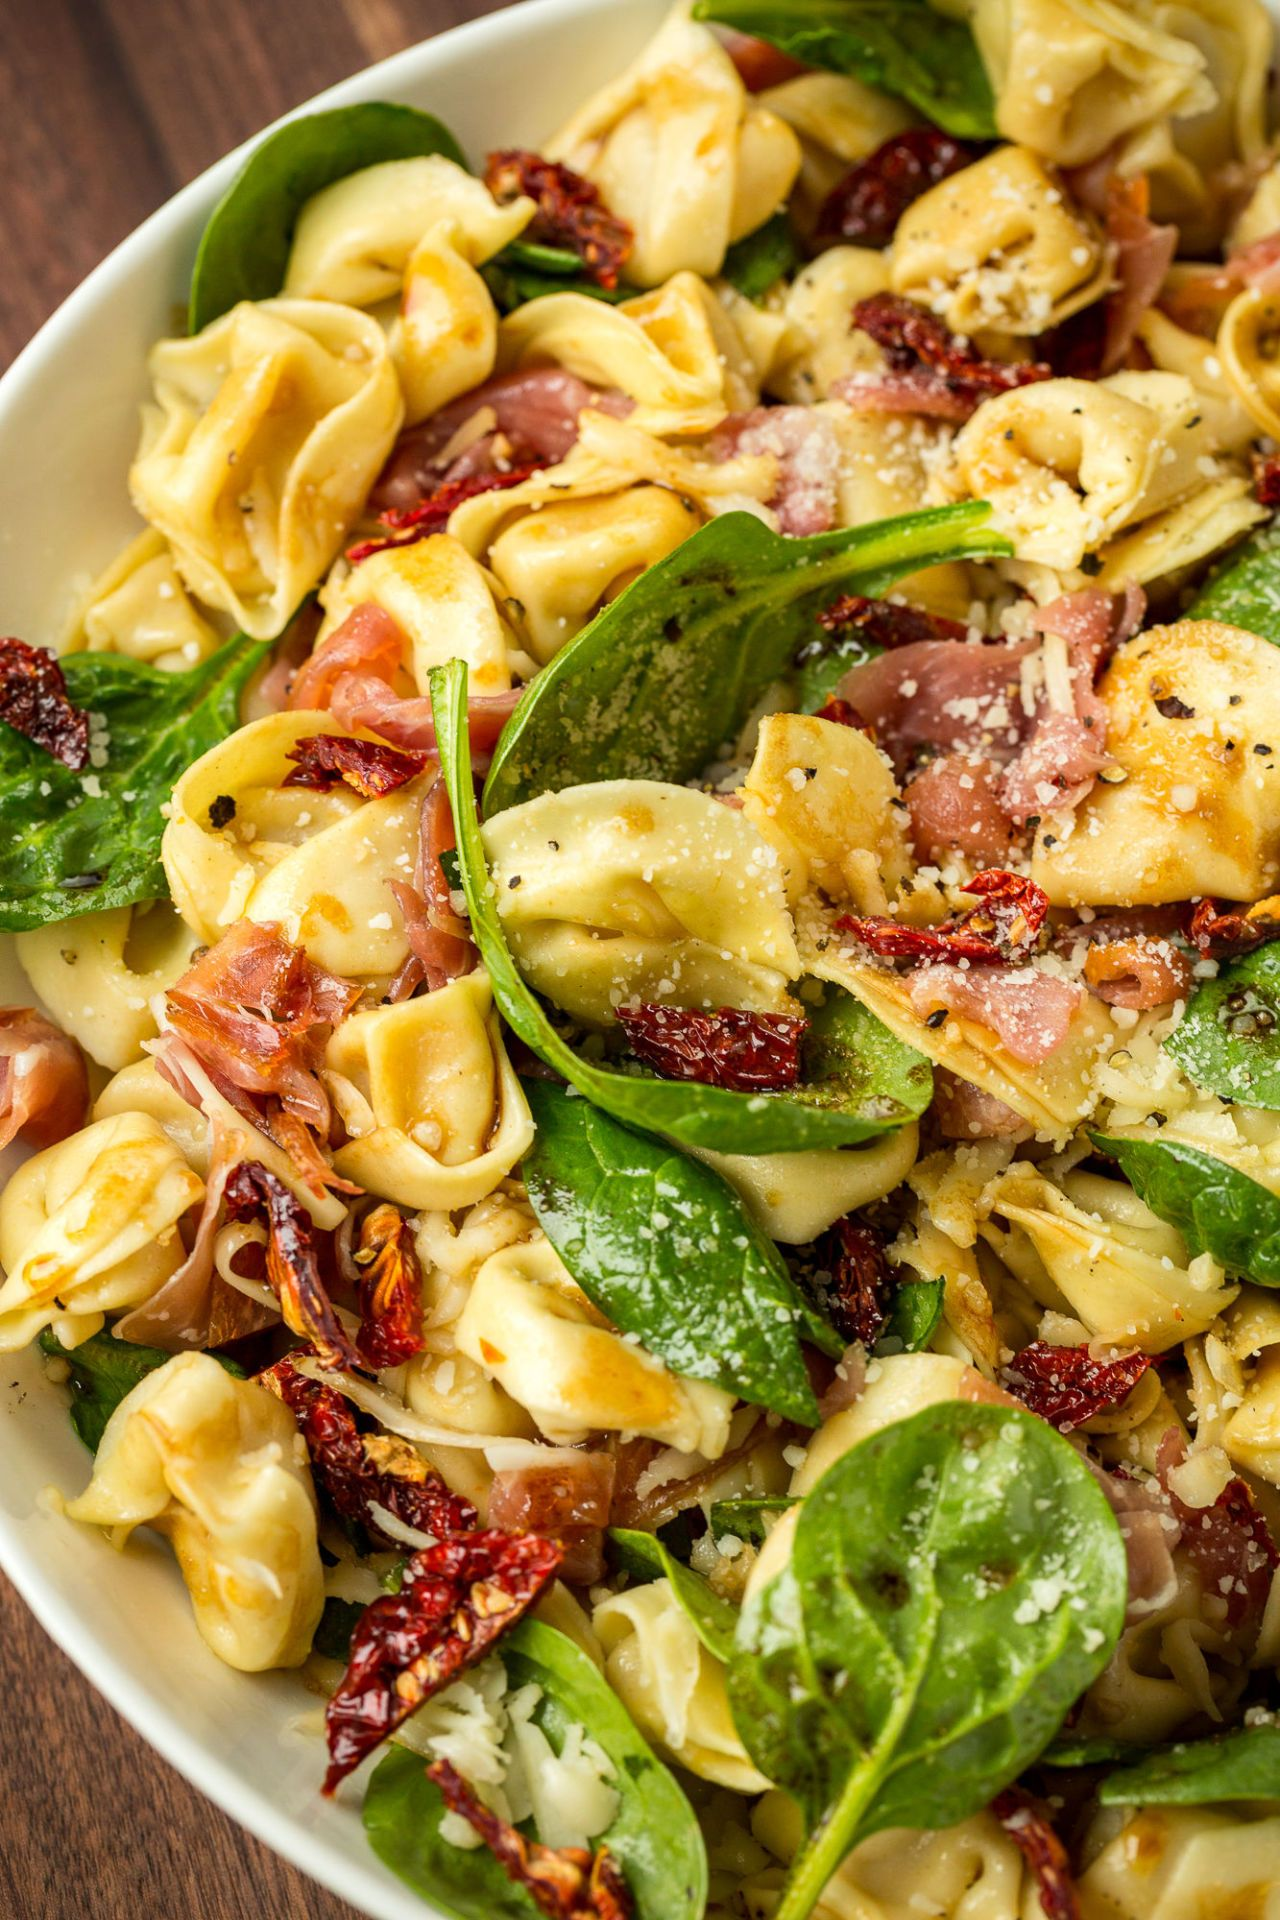 Our Tuscan Tortellini Salad Is the Ultimate Party